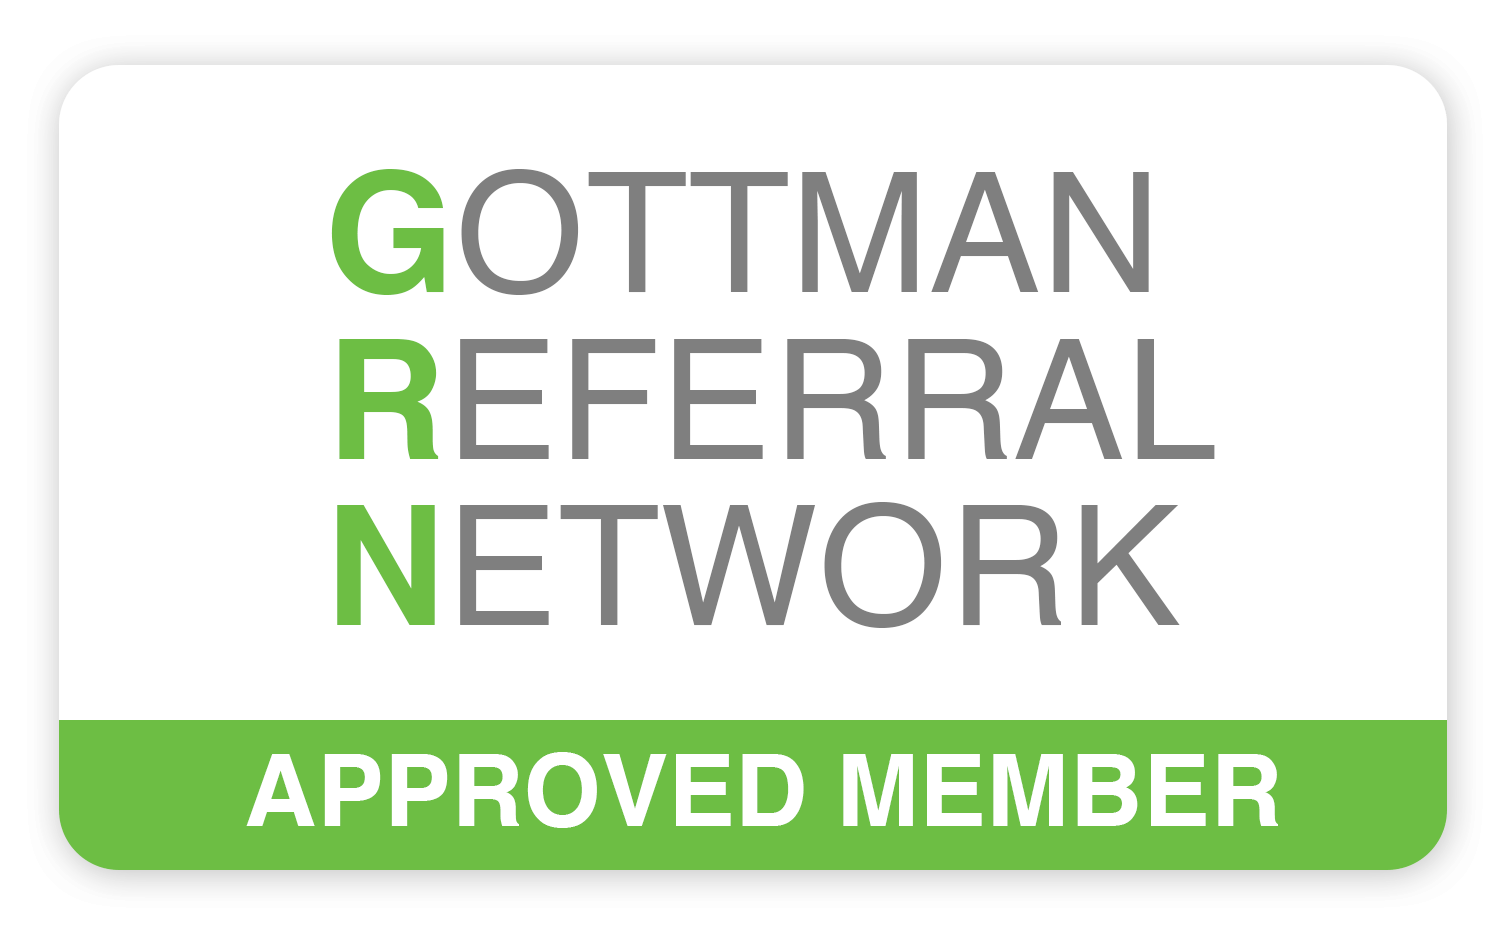 Ashlin Blum's profile on the Gottman Referral Network